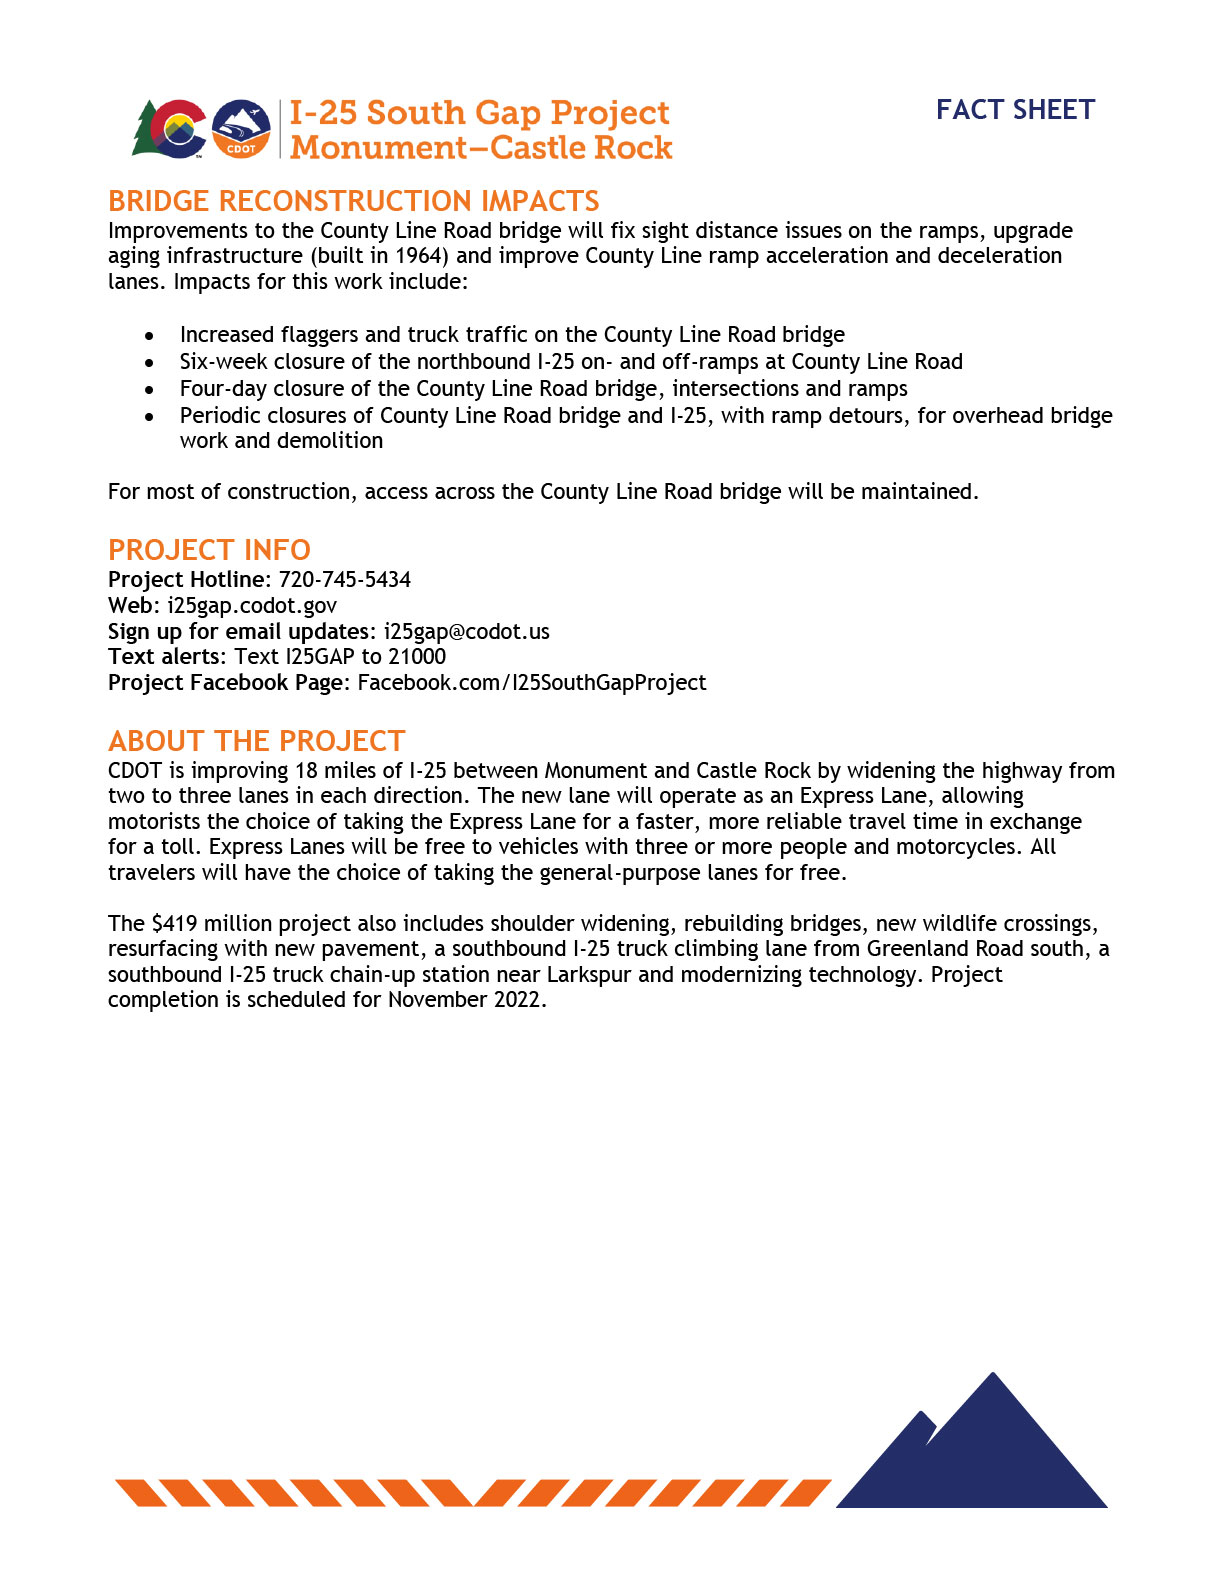 Project Fact Sheet - Page 2